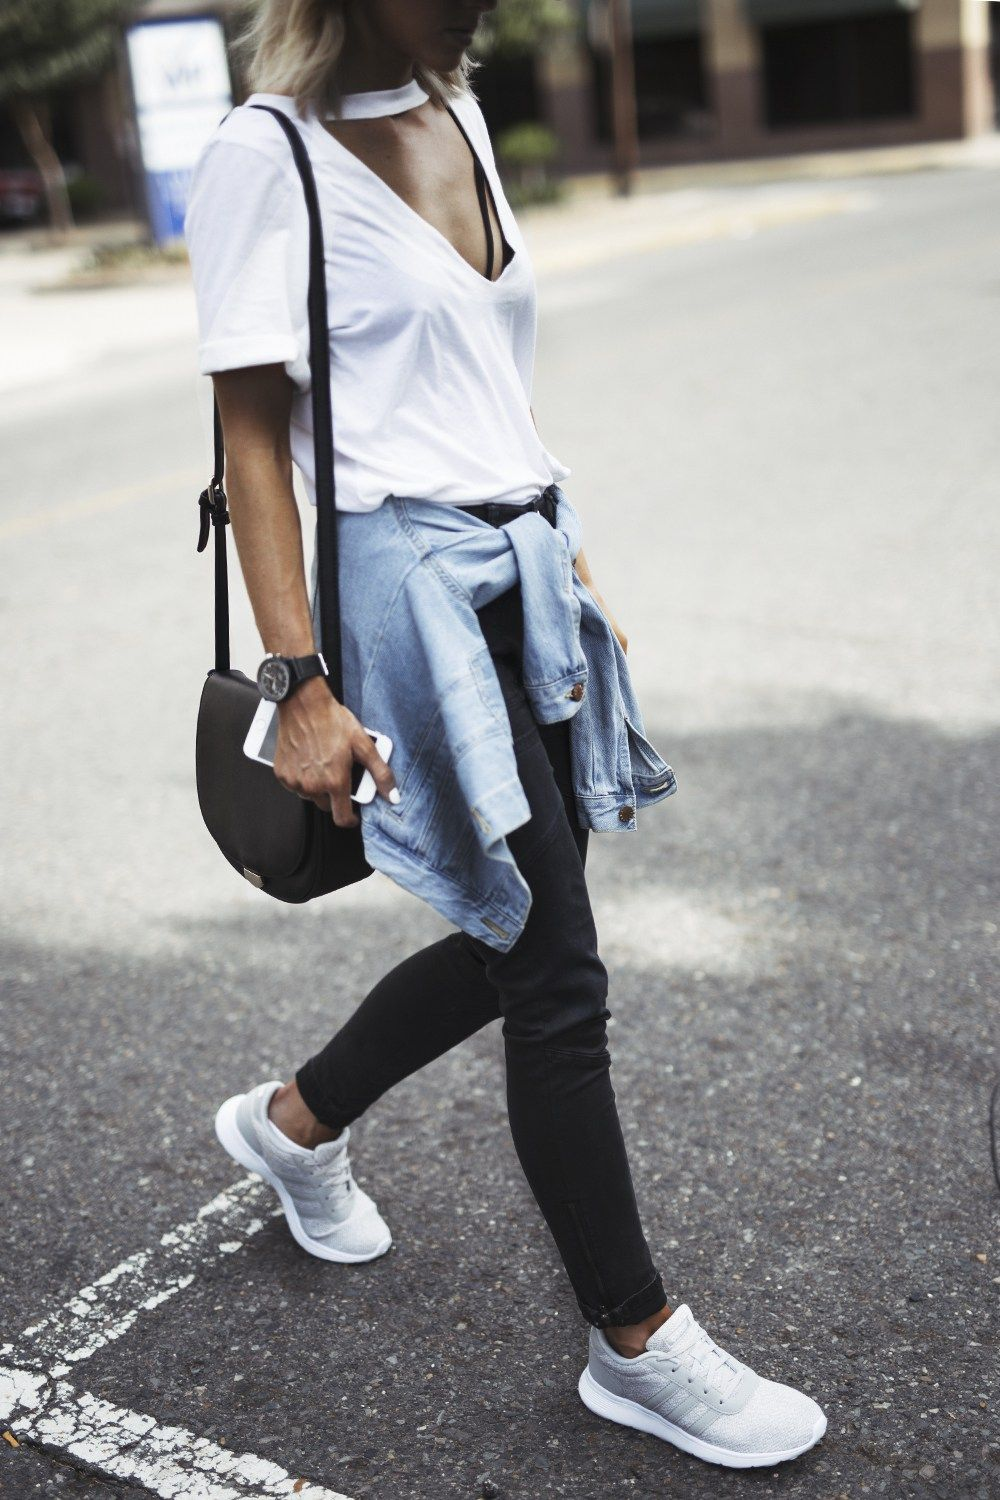 denim button up | White sneakers outfit